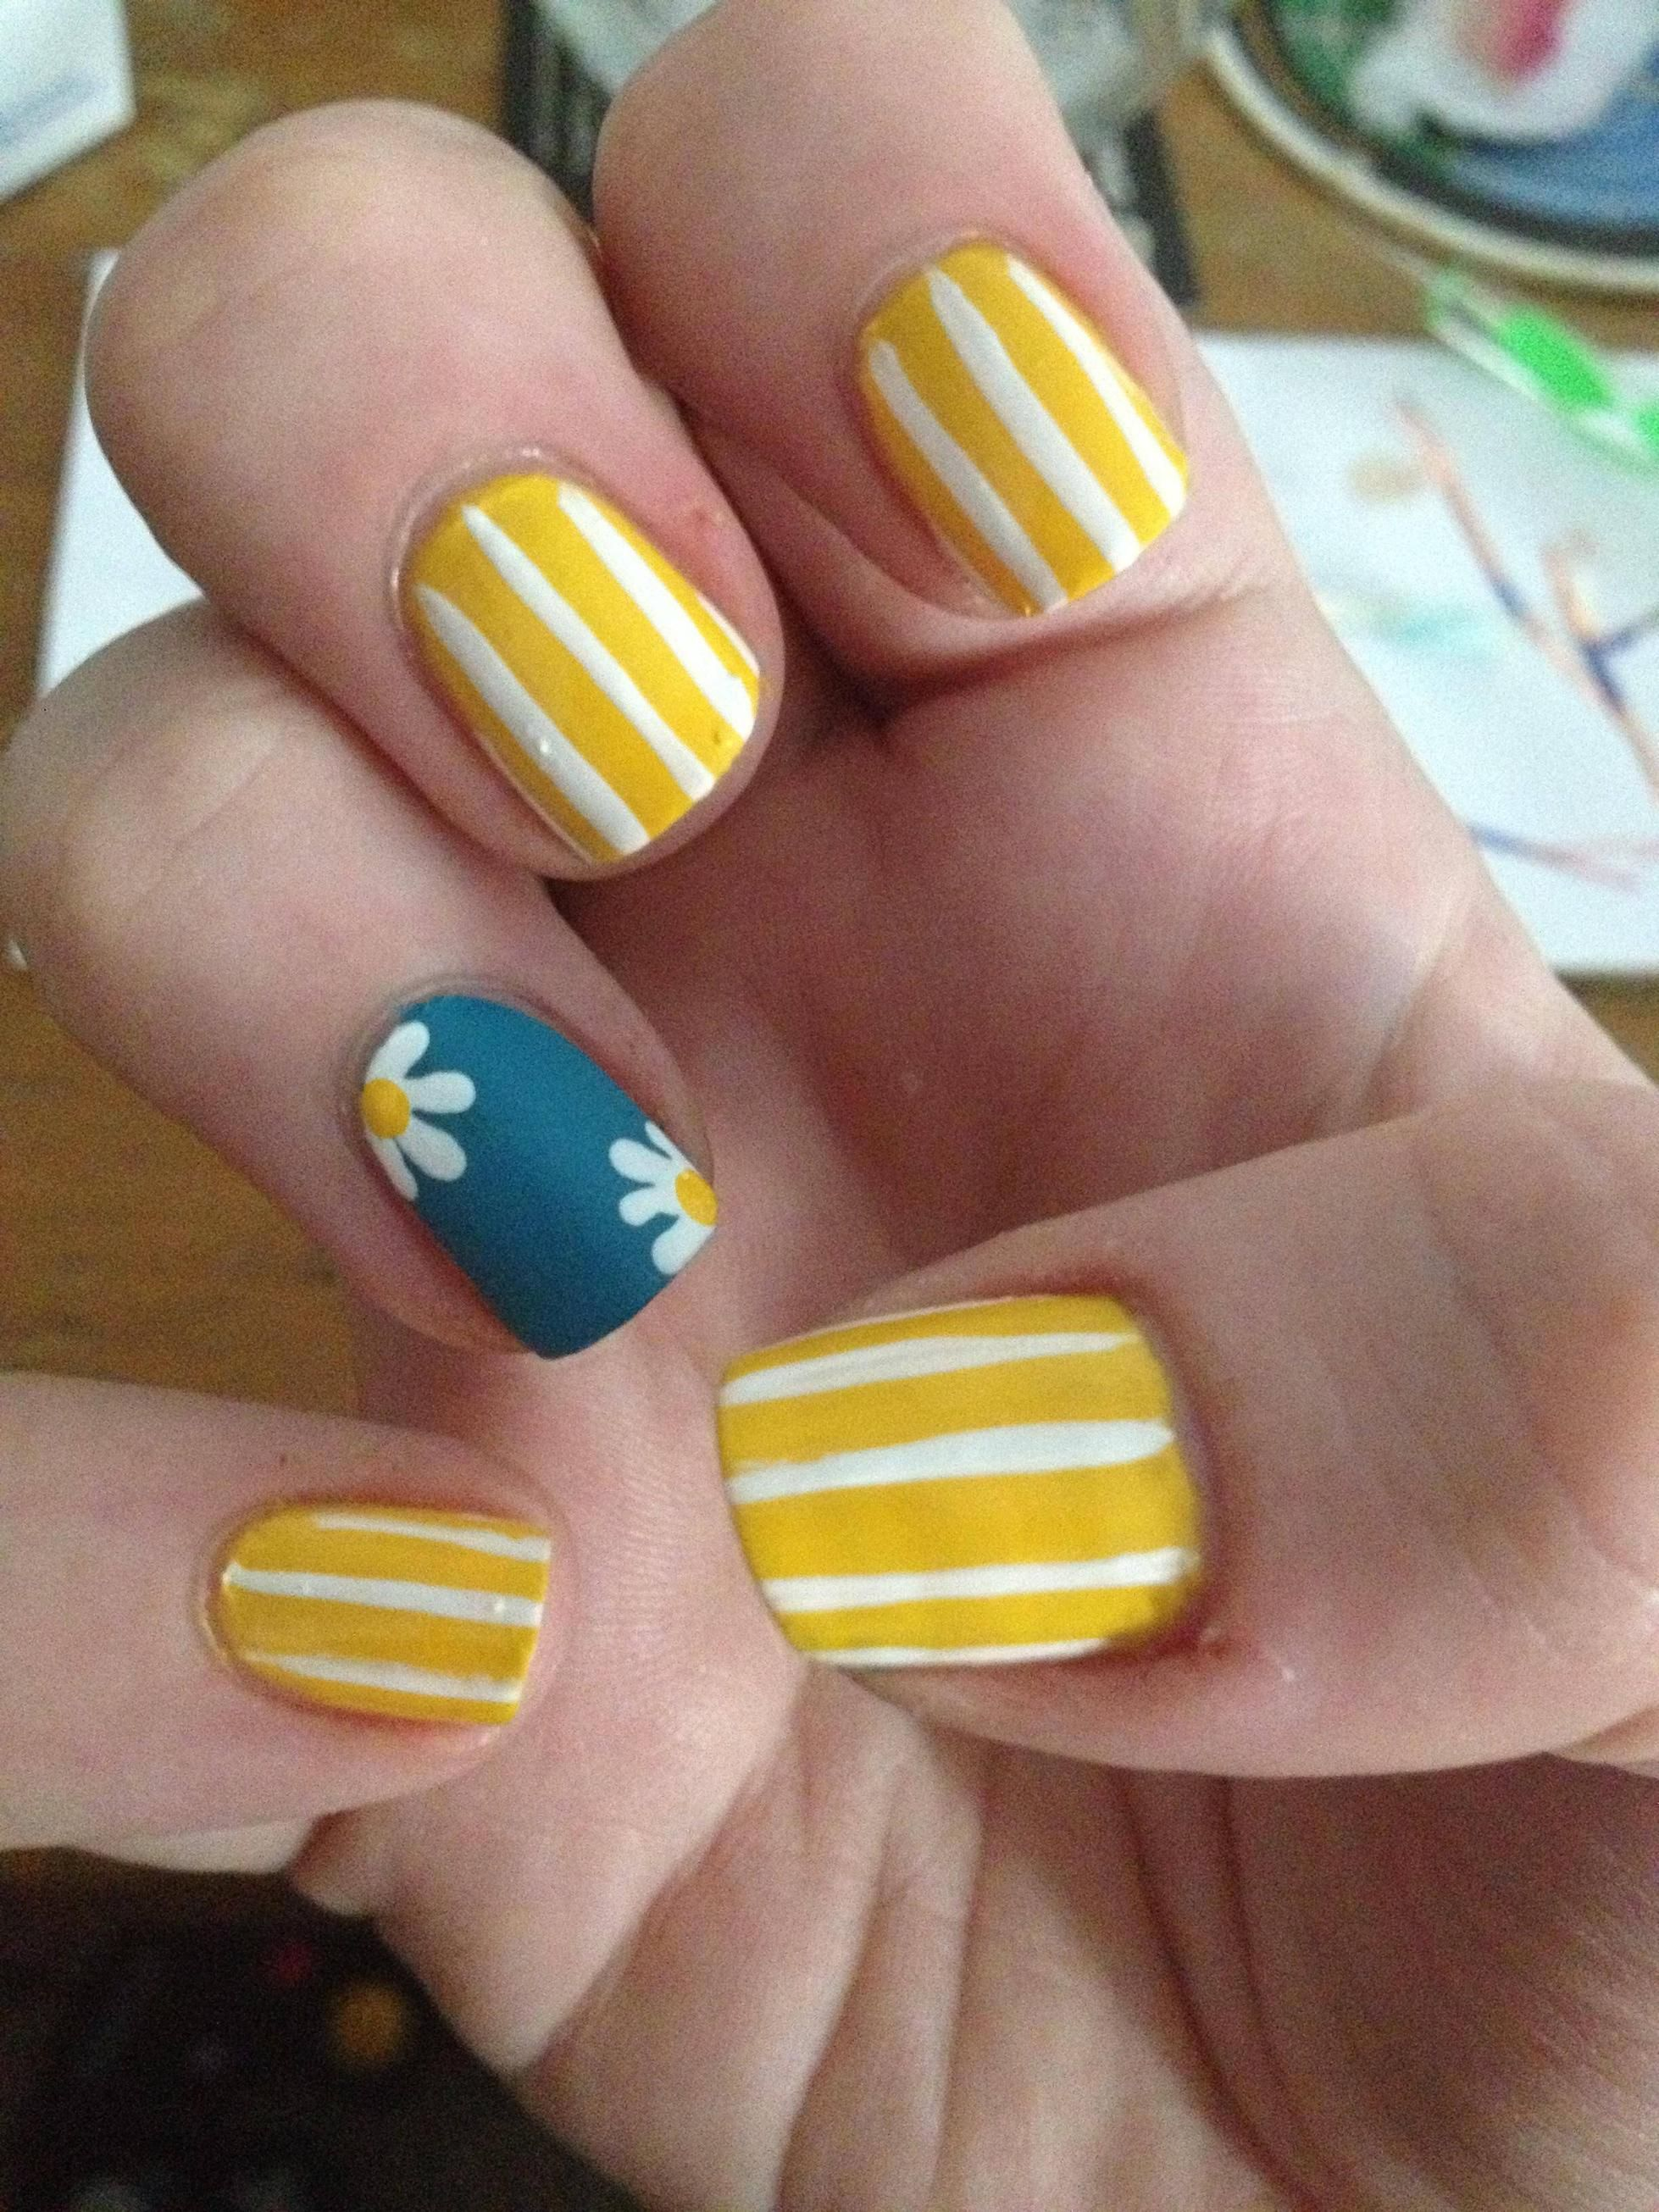 Daisy nails, inspired by MissJenFABULOUS. They make me so happy ...